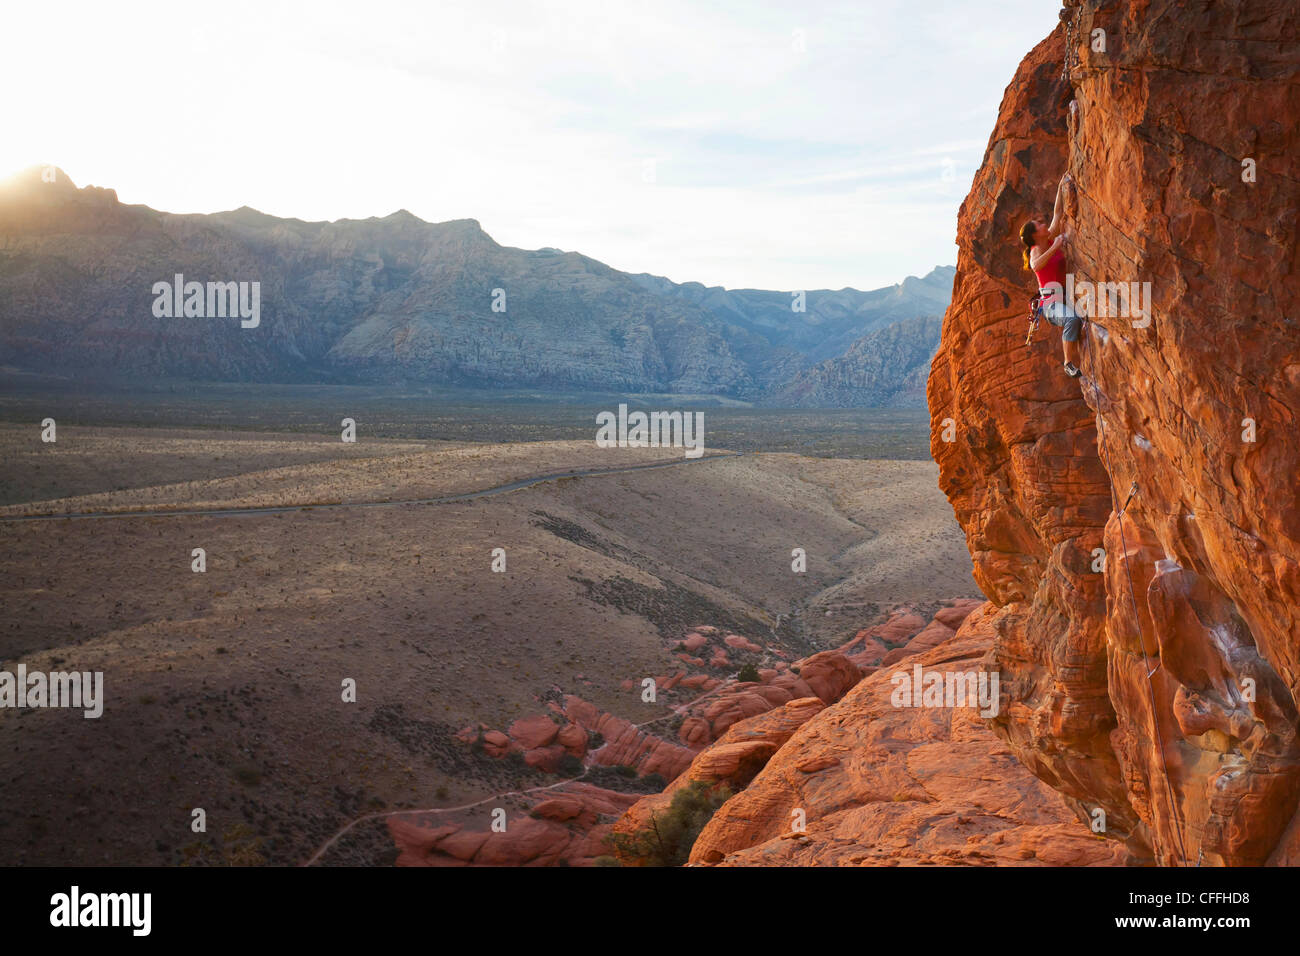 Ein Kletterer in Calico Hills, Red Rock Canyon National Conservation Area, Nevada, USA. Stockfoto